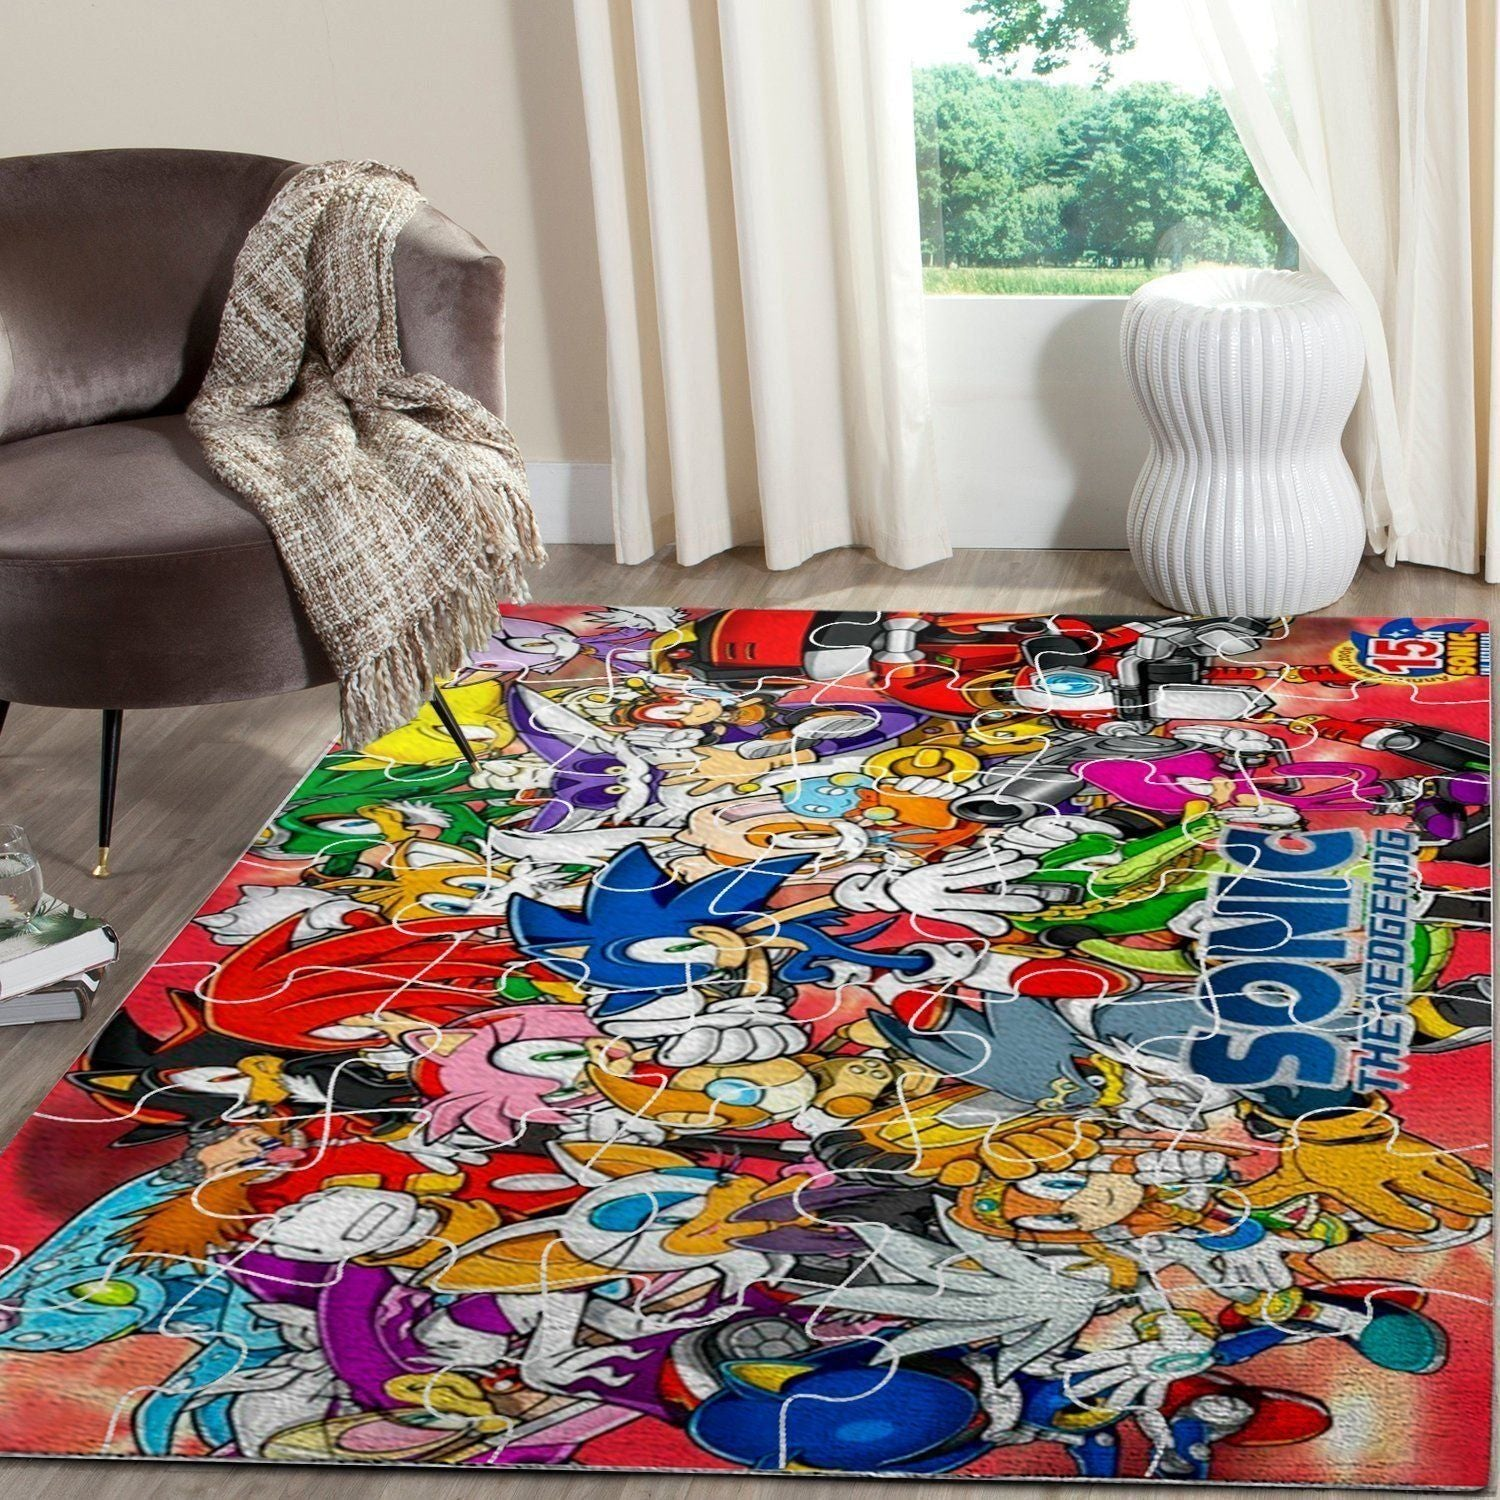 Sonic the Hedgehog Area Rug / Gaming Carpet, Gamer Living Room Rugs, Floor Decor - Characters 10112